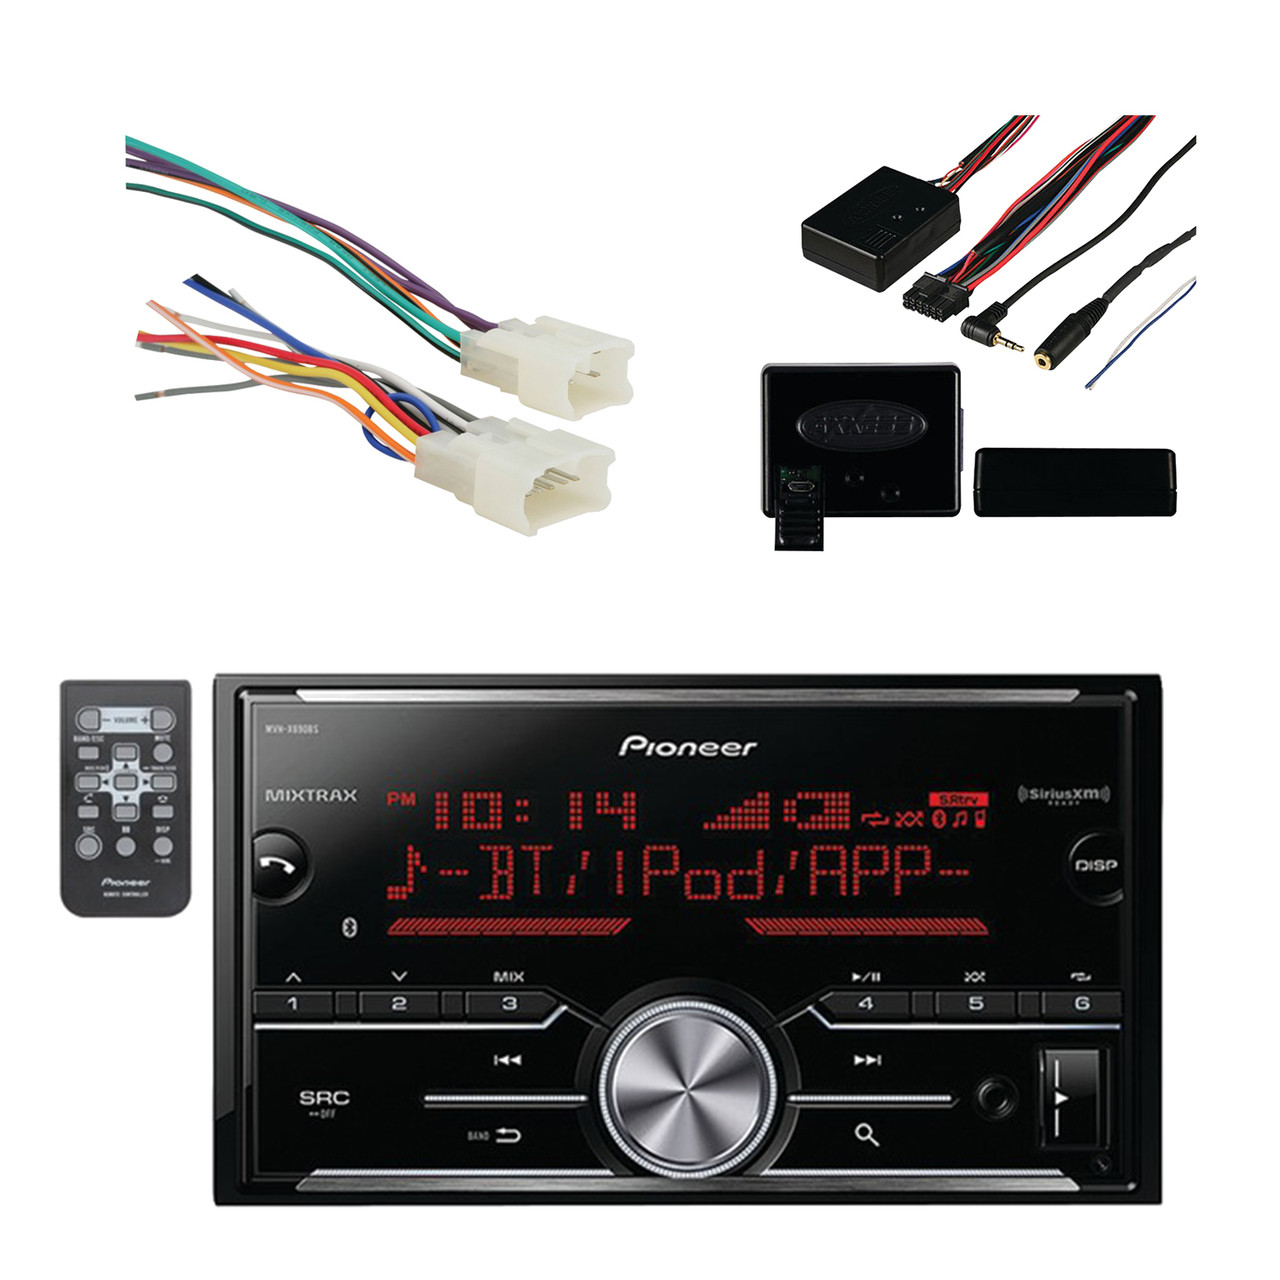 hight resolution of pioneer vehicle digital media double din receiver with bluetooth black with metra radio wiring harness for toyota 87 up power 4 speaker and metra axxess